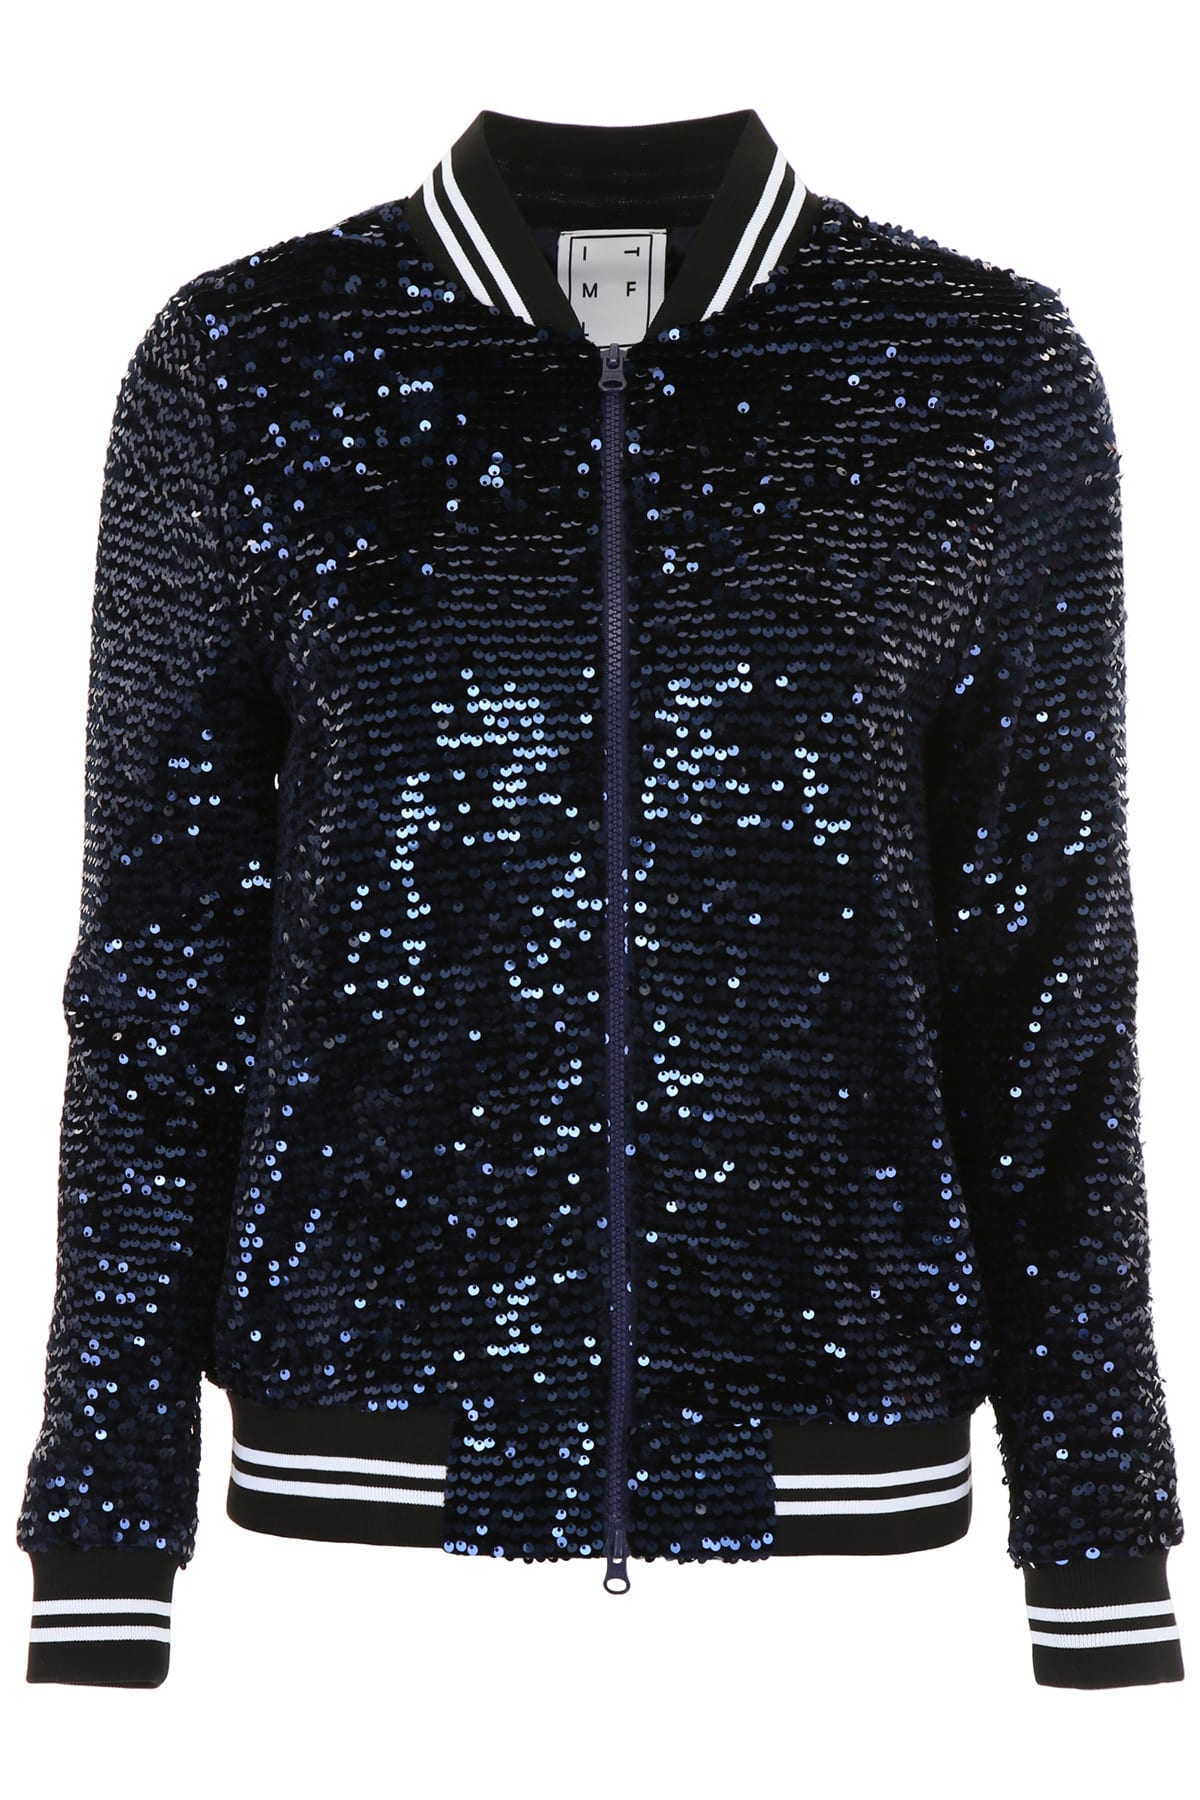 In The Mood For Love Sequins Katey Bomber Jacket